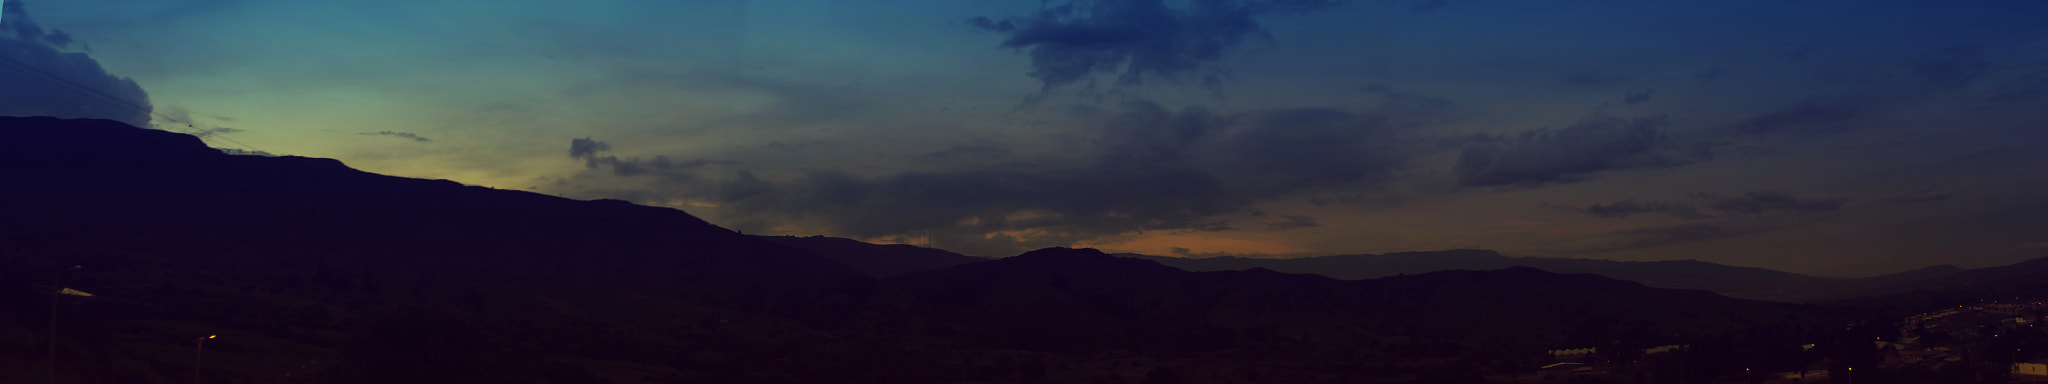 Photograph panoramic hill by Tim Torner on 500px